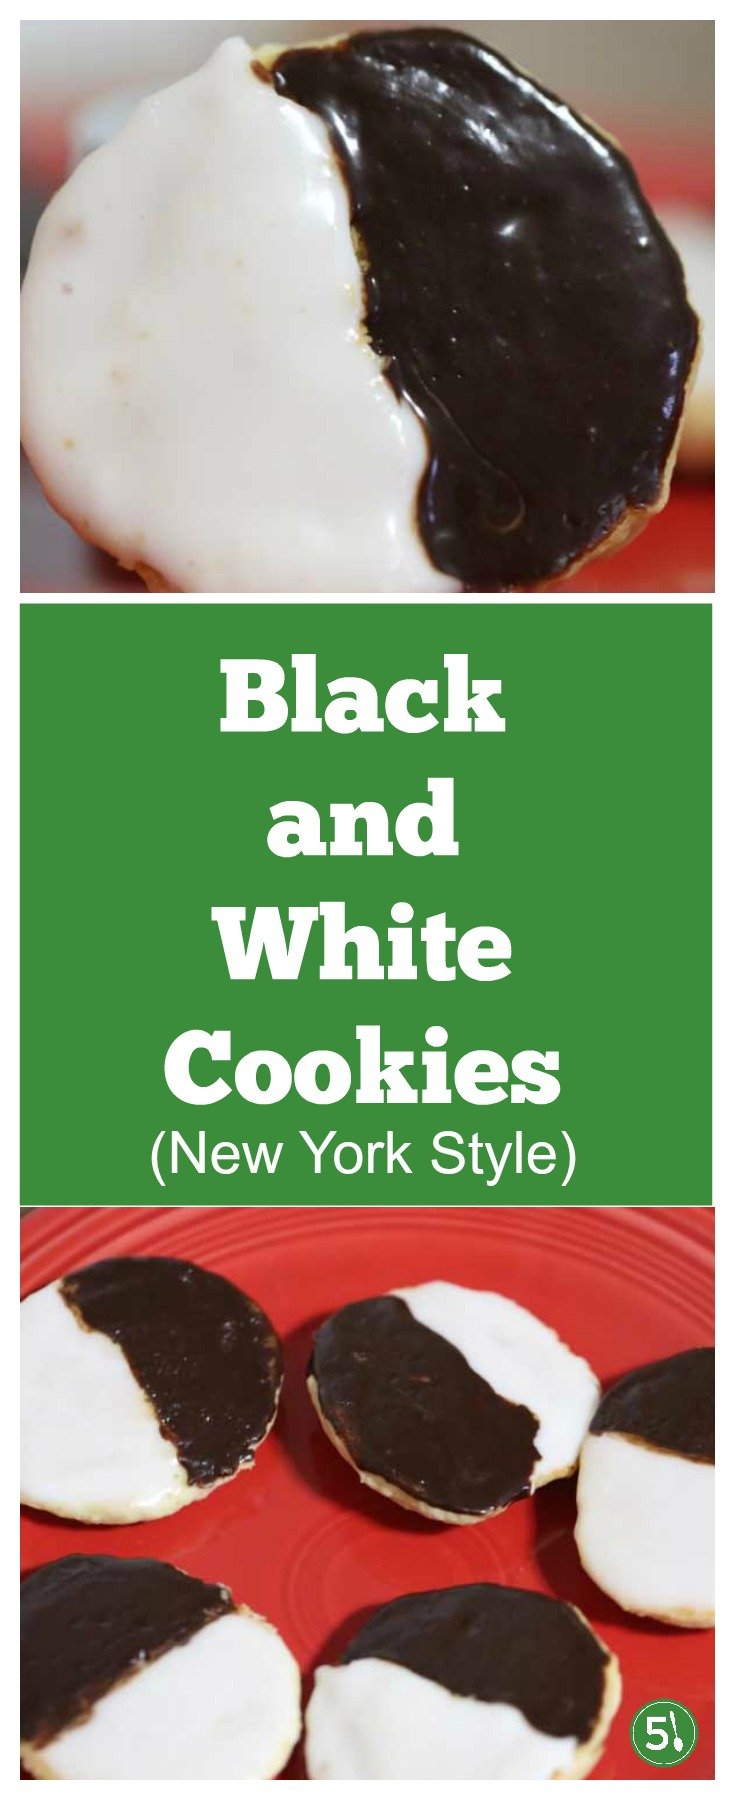 Black and white cookies recipe just like you would find in a New York Bakery. Decorated black and white cookies for the holidays are so fun!